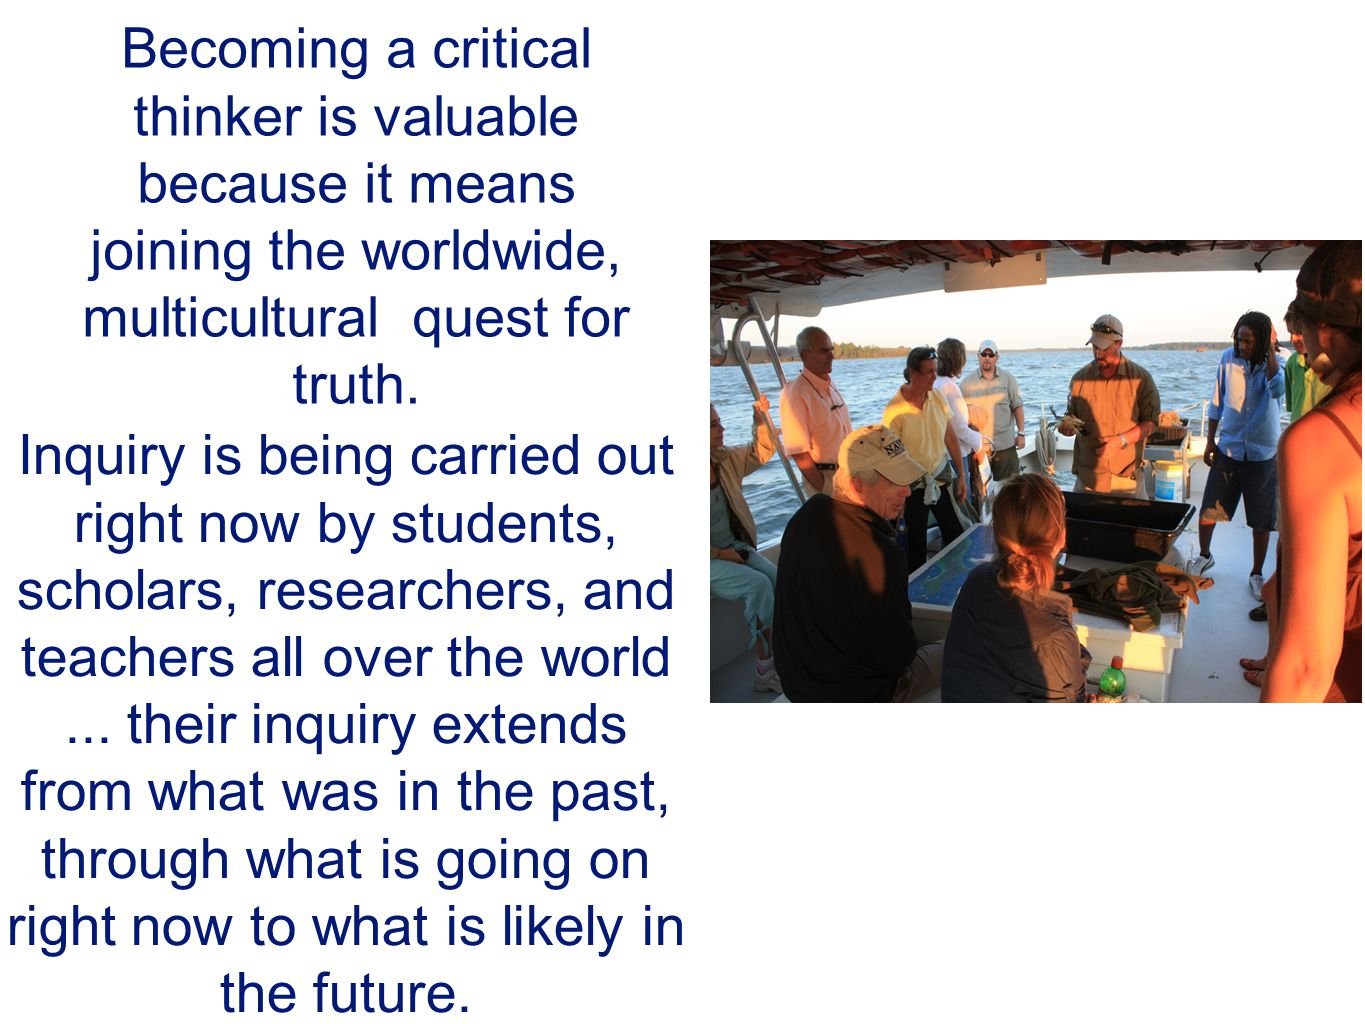 Inquiry is being carried out right now by students, scholars, researchers, and teachers all over the world...